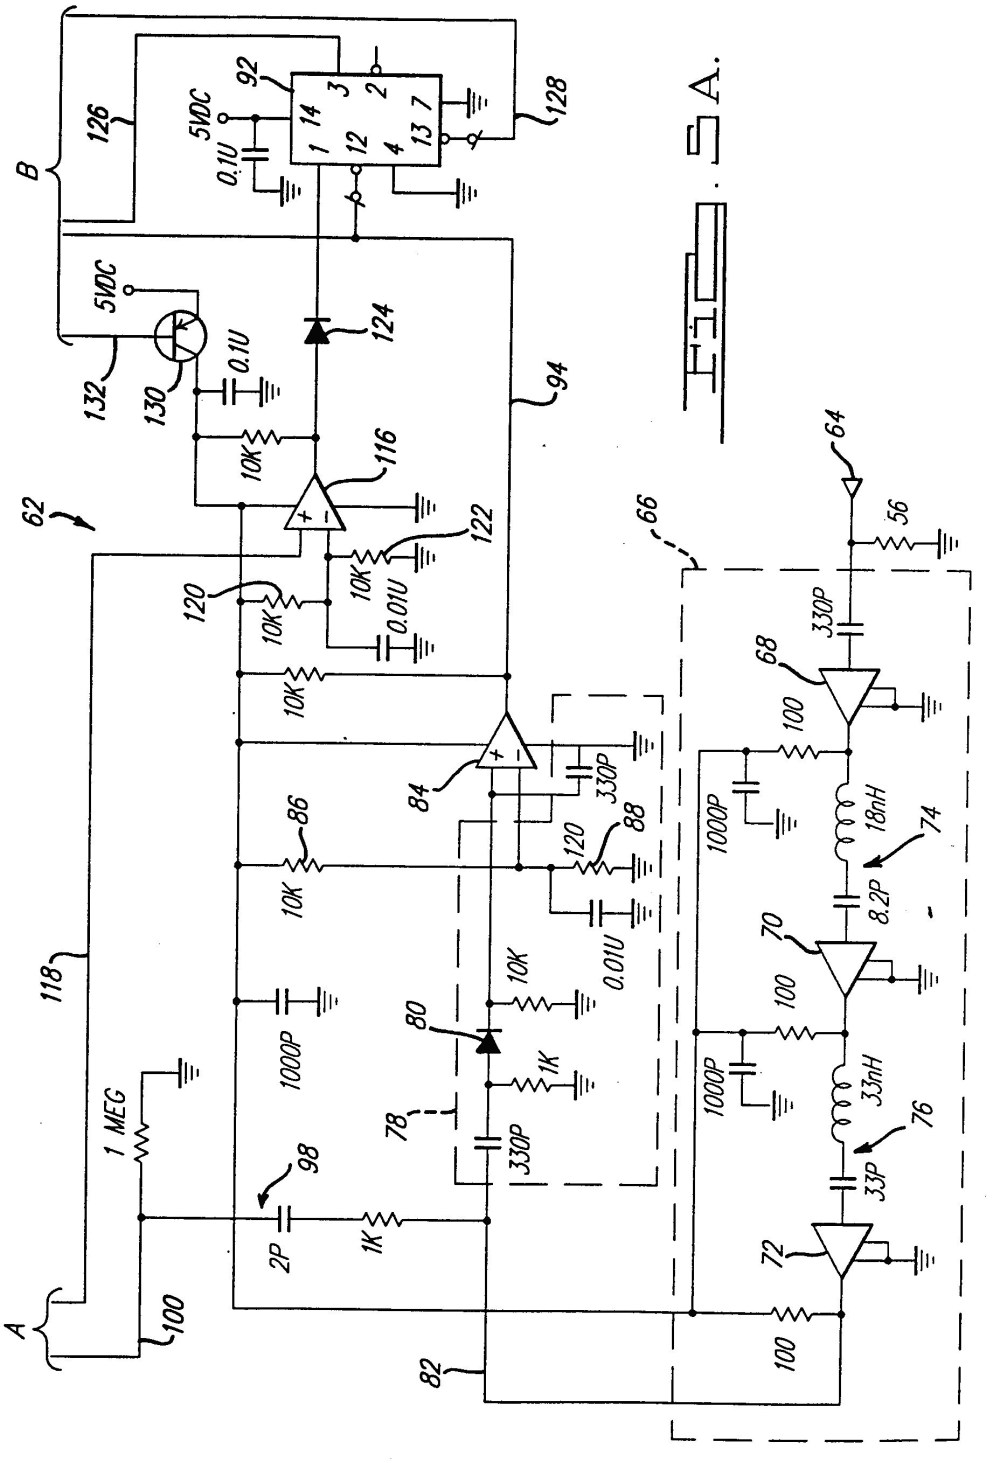 medium resolution of genie garage door opener sensor wiring diagram wiring diagram detail name genie garage door sensor